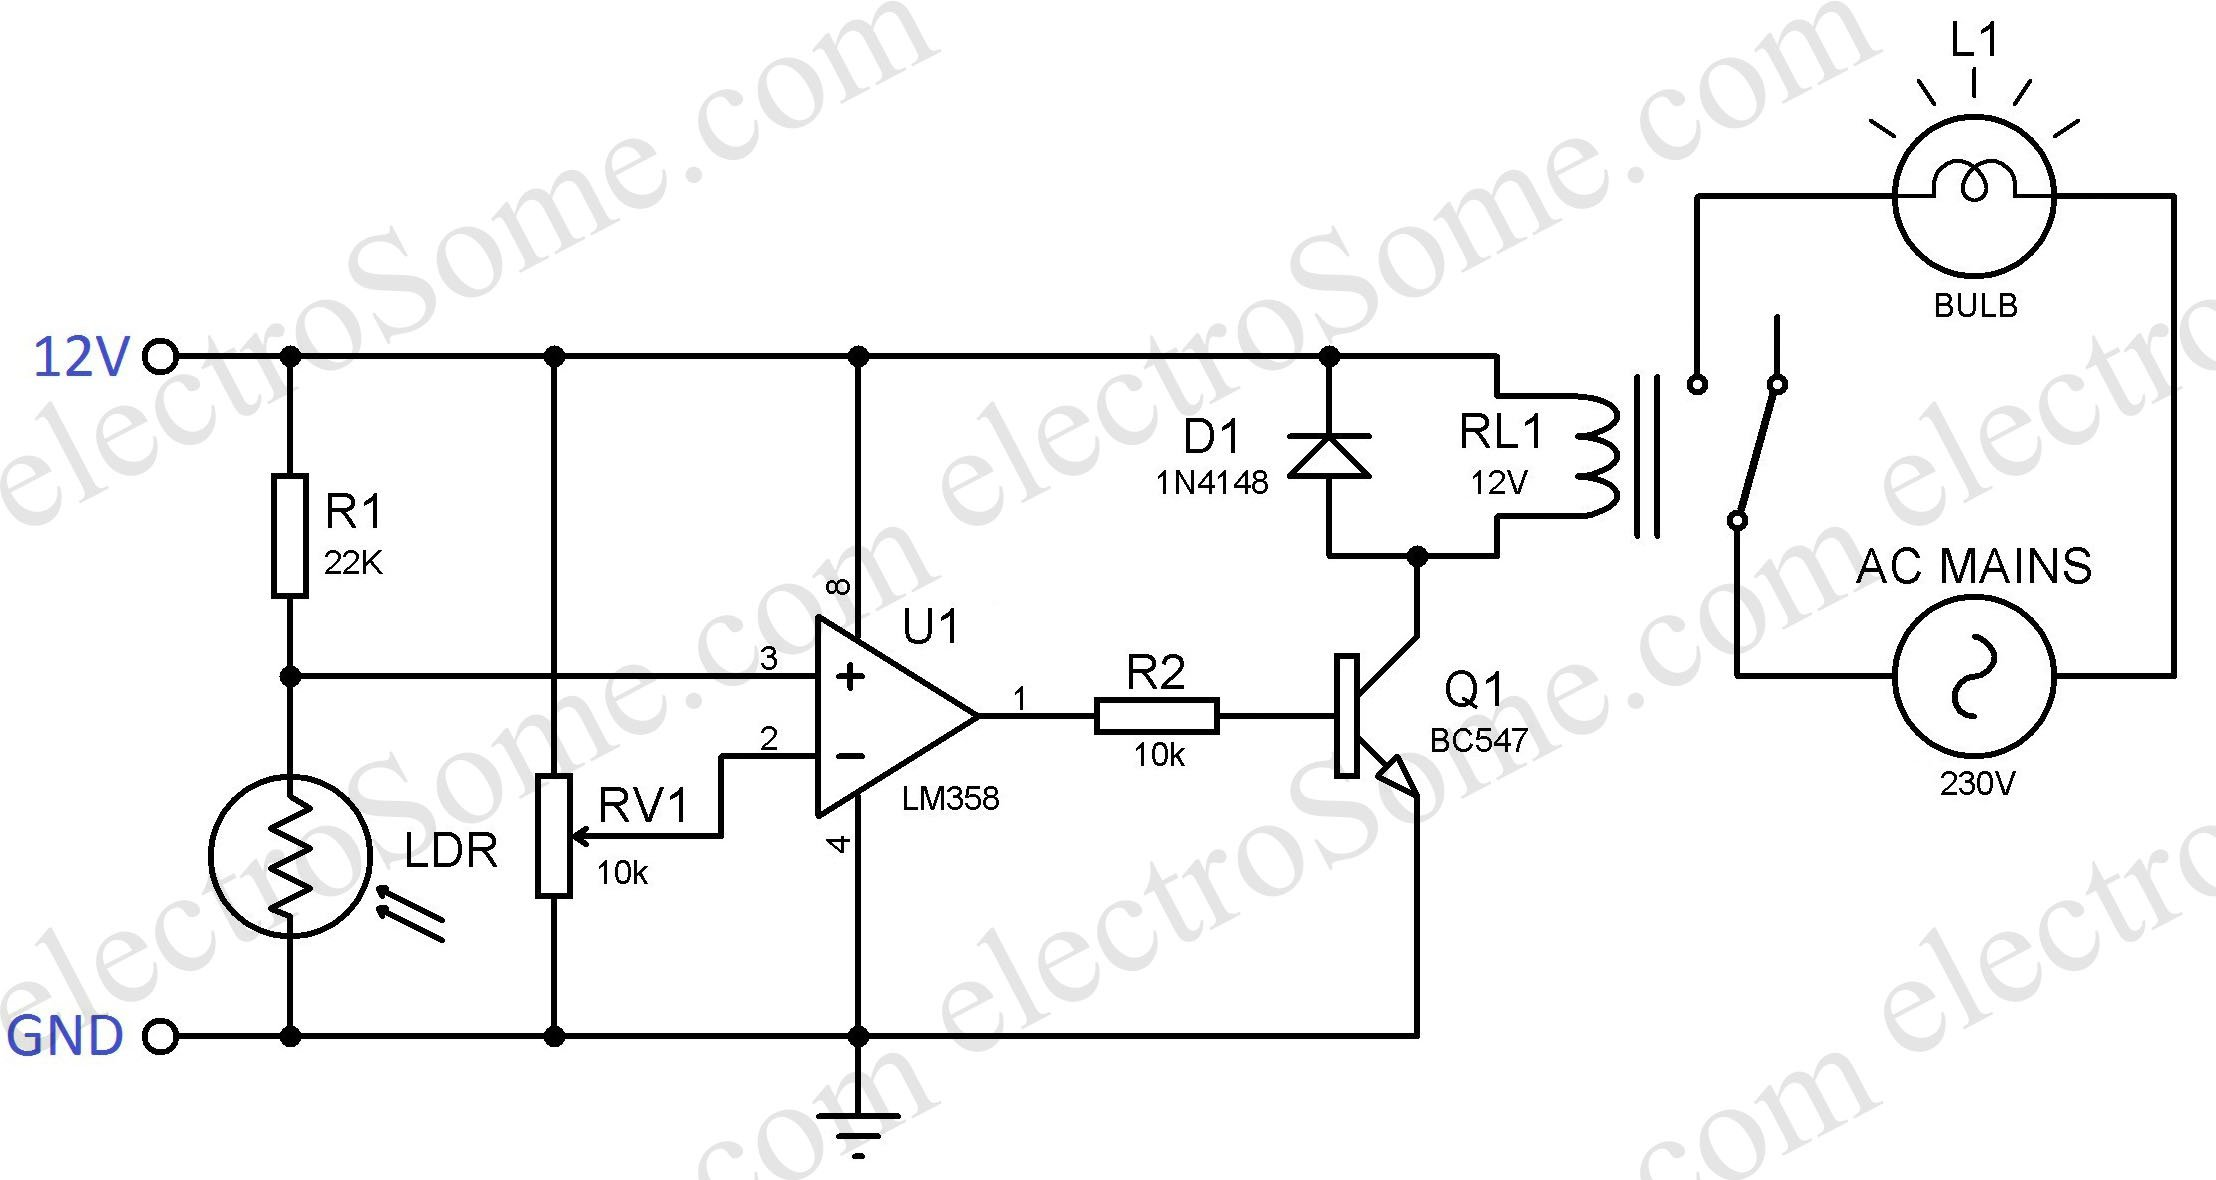 Day Night Switch Circuit Diagram Diy Enthusiasts Wiring Diagrams Light 220v Automatic Lamp Using Ldr Rh Electrosome Com Simple